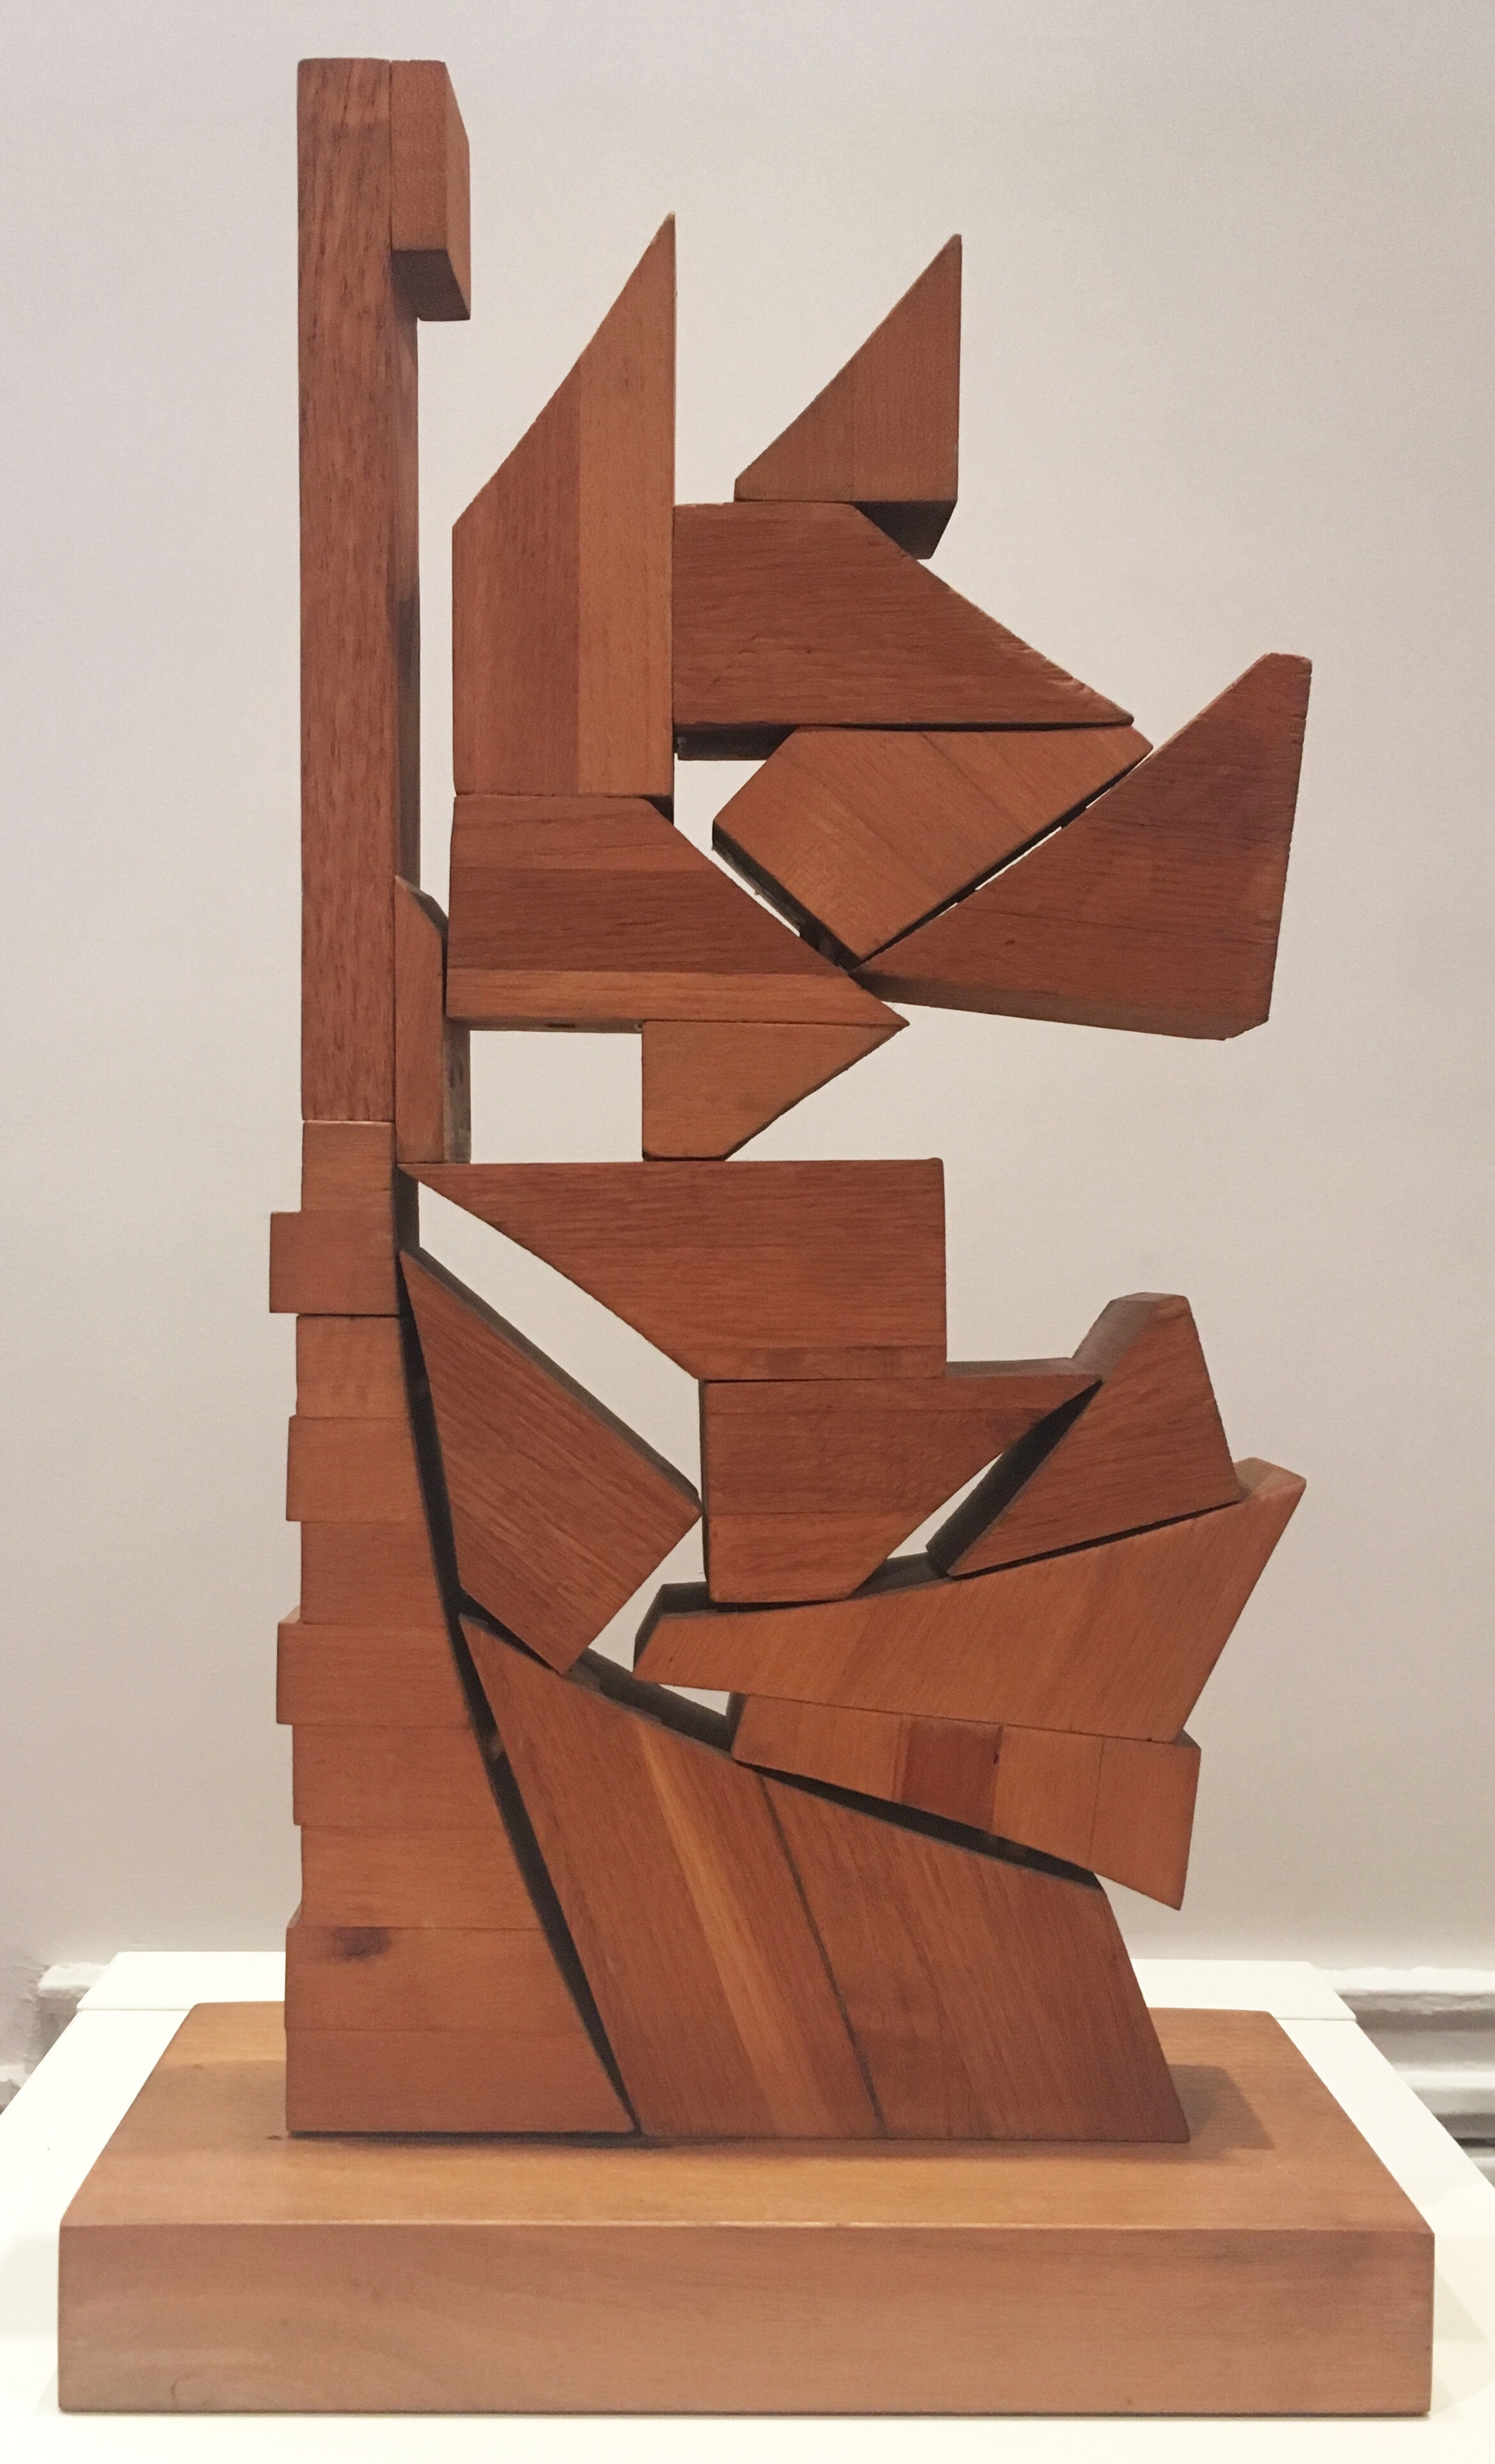 Abstract wood sculpture by Dorothy Dehner